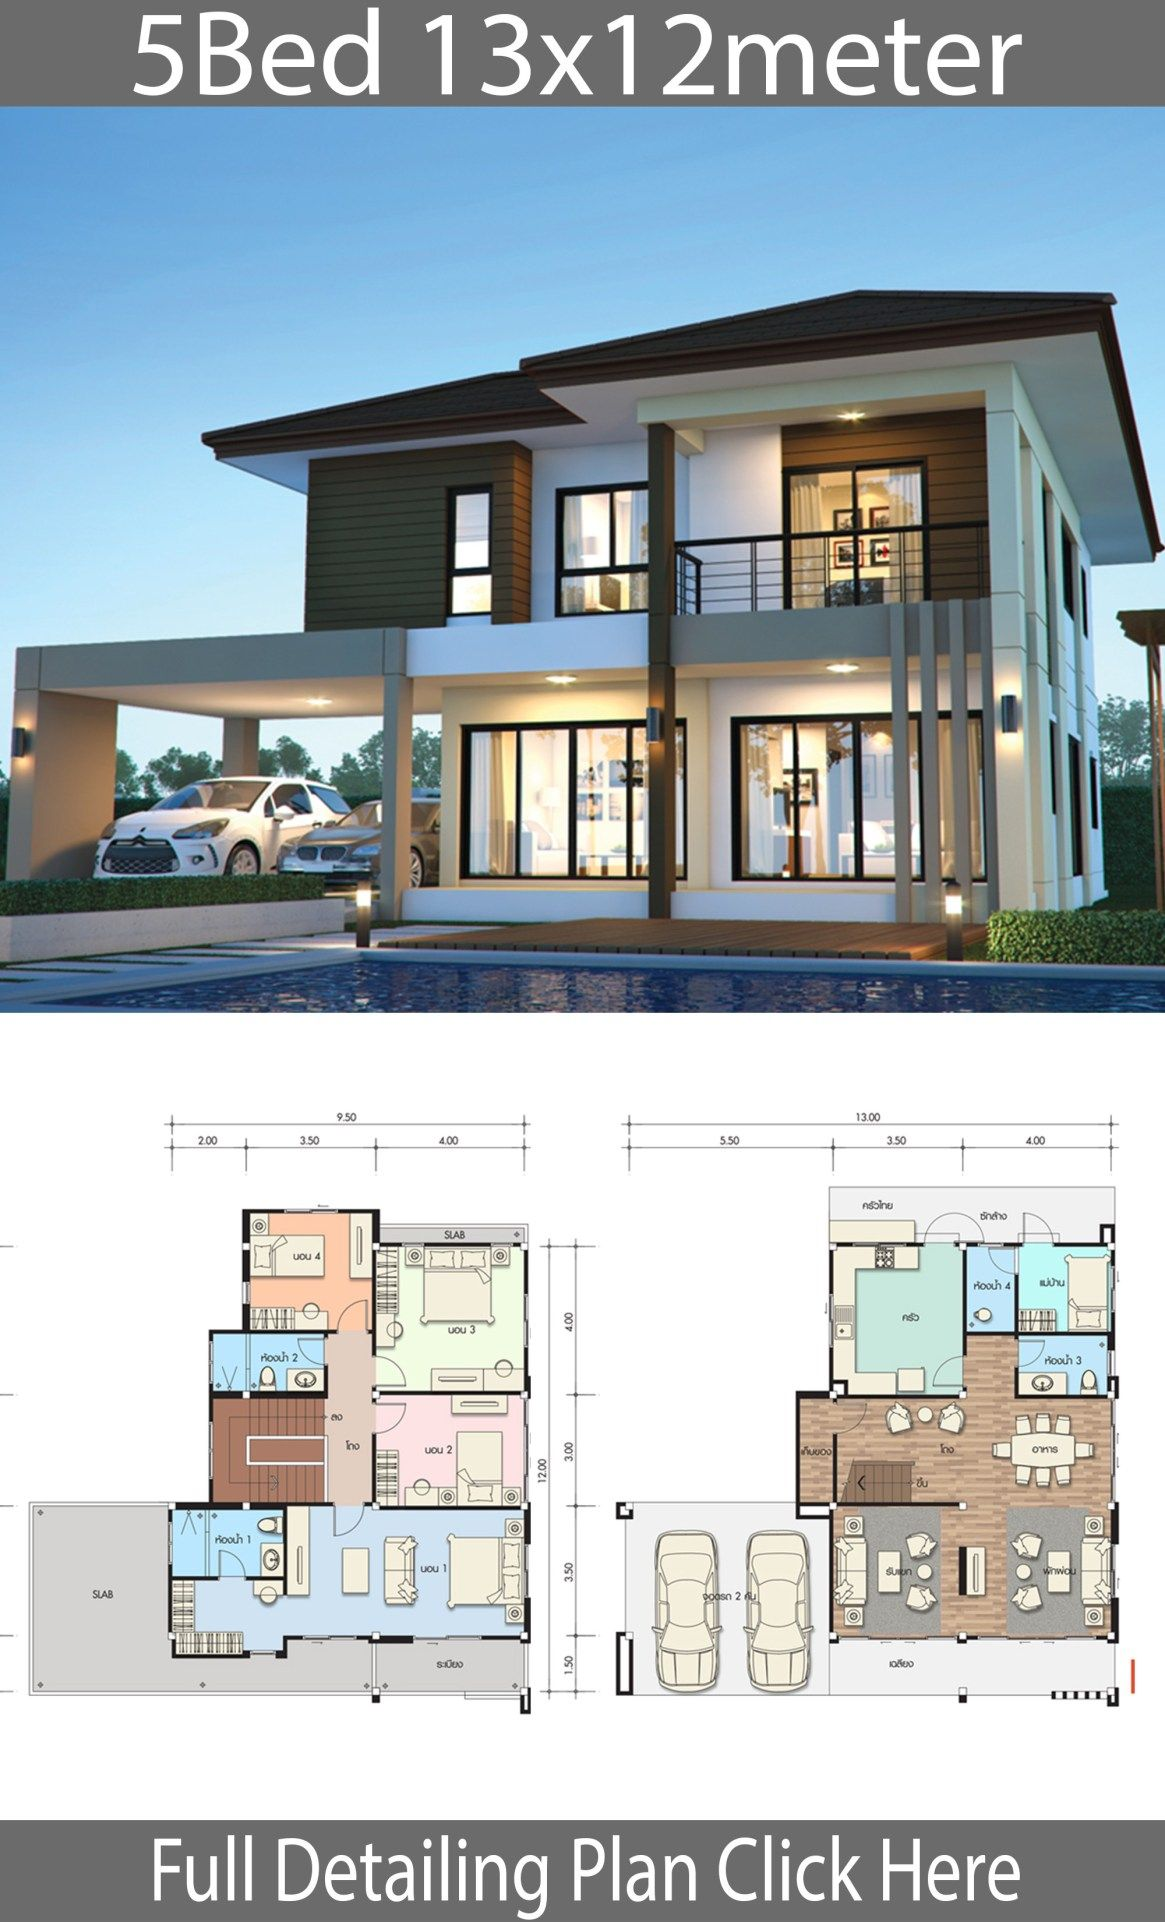 House Design Plan 13x12m With 5 Bedrooms Architectural House Plans House Layout Plans Home Design Plans